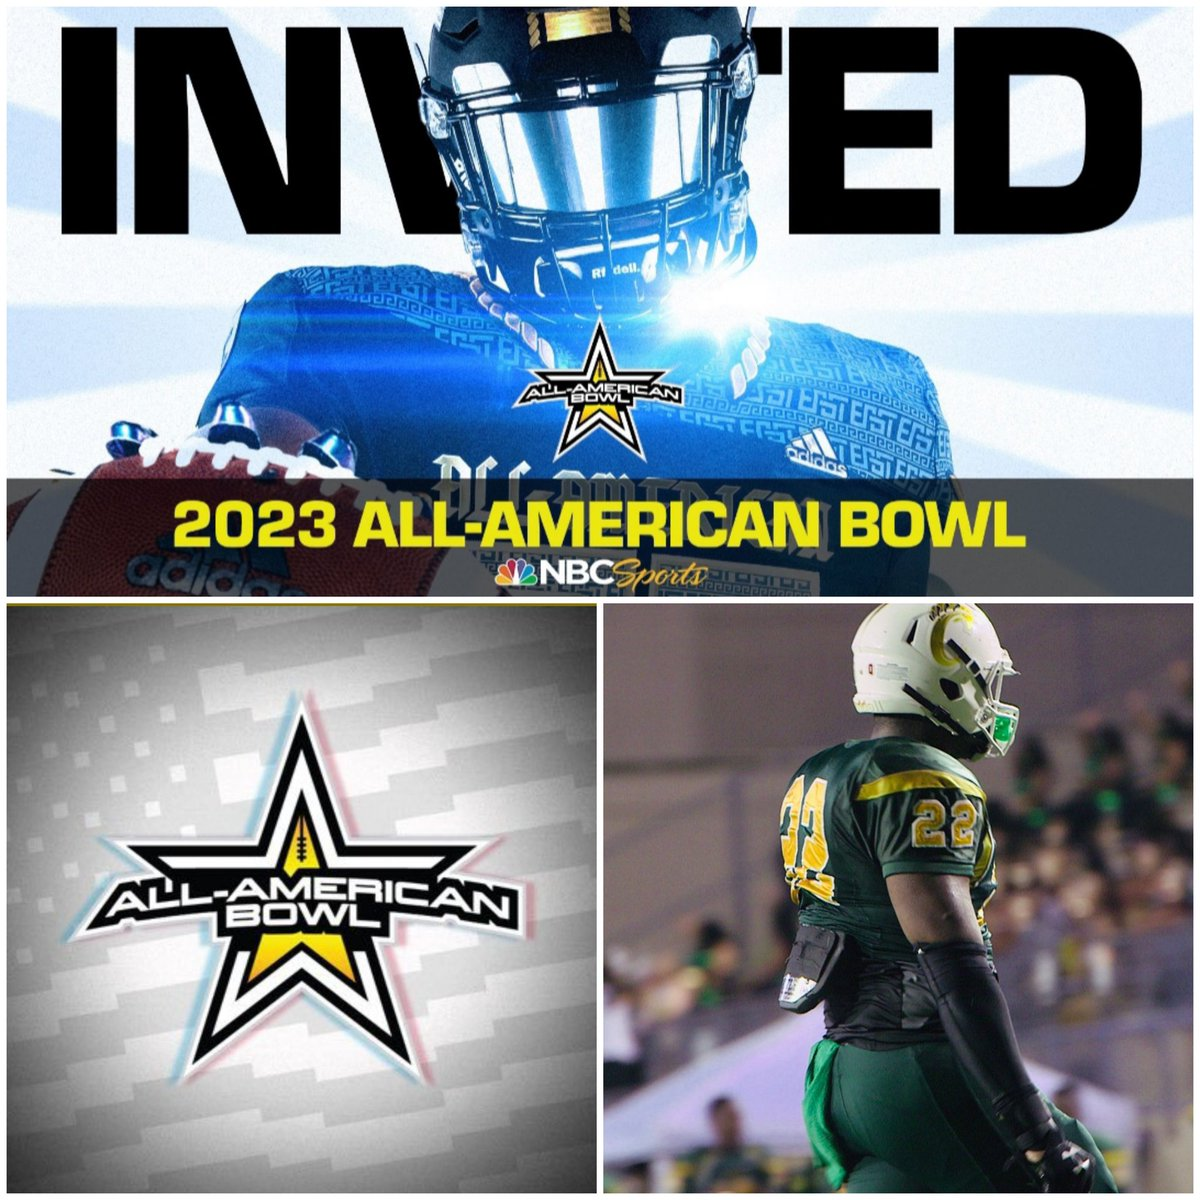 Congrats To James Smith On Receiving A Selection To 23' All-American Bowl. #MadhouseFit #Family #WeBuiltDifferent https://t.co/7OLmlFXO21